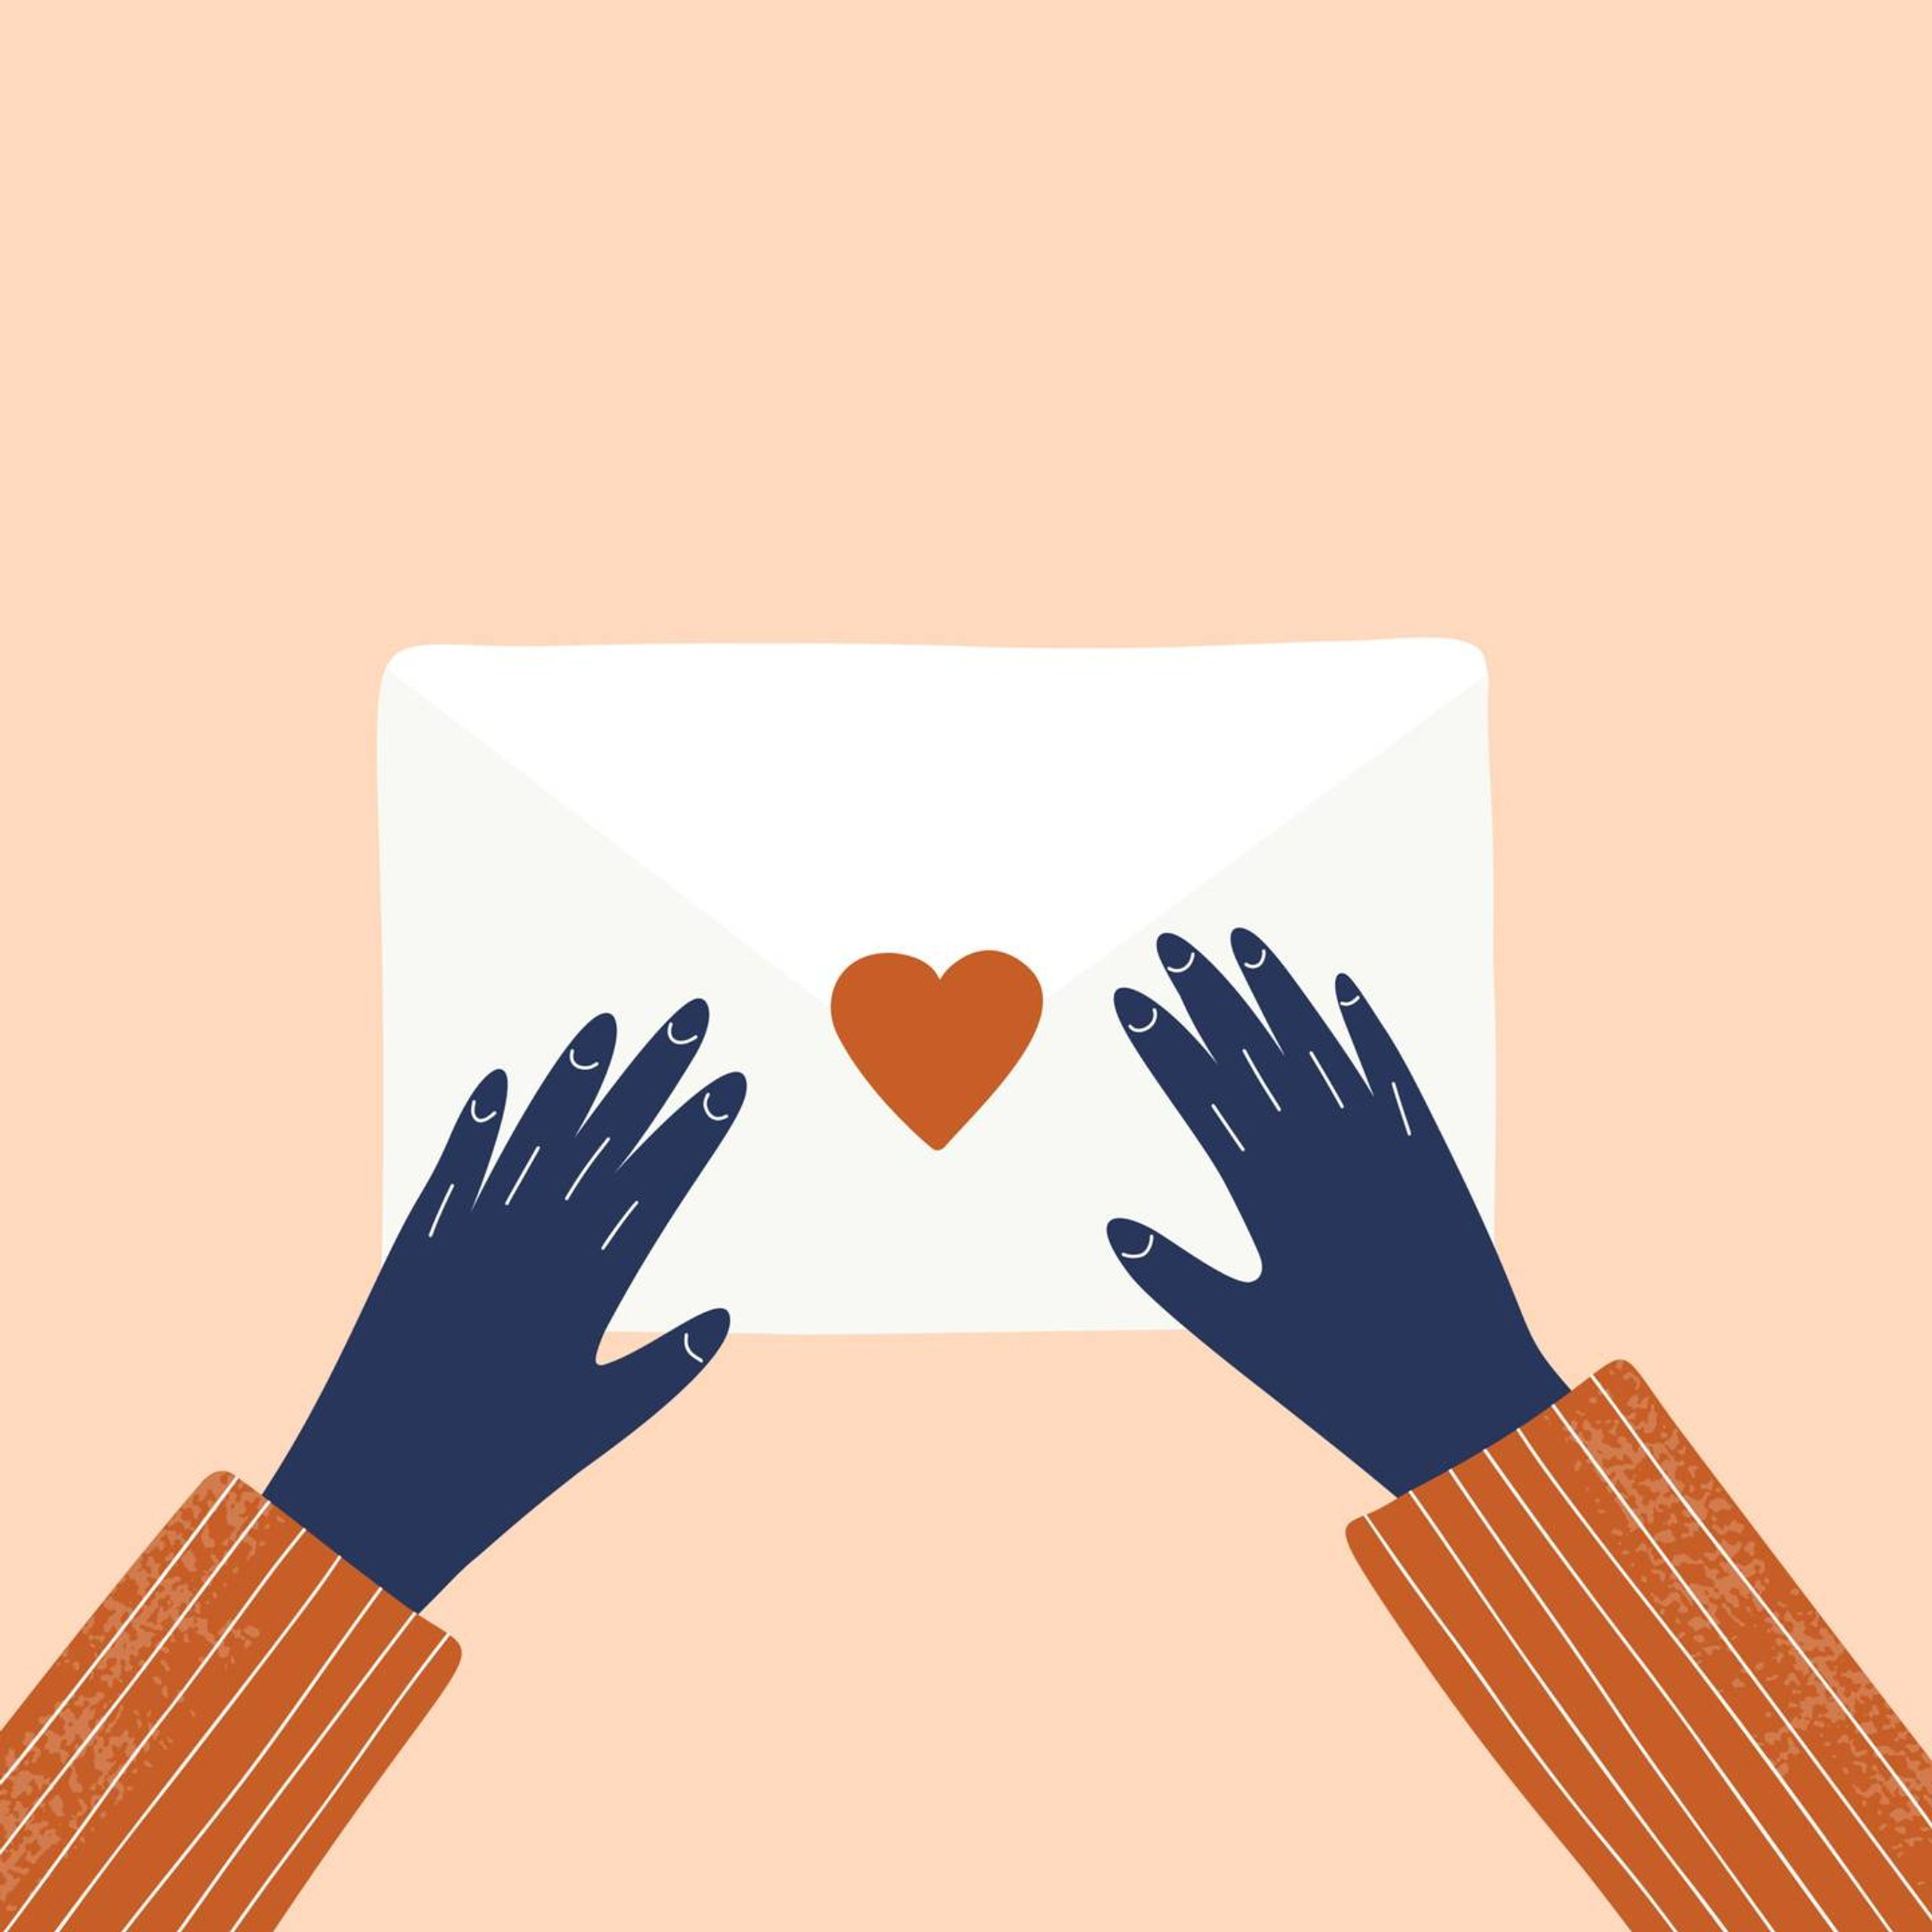 Love letter and hands vector hand drawn illustration, pandemic anxiety, rewire